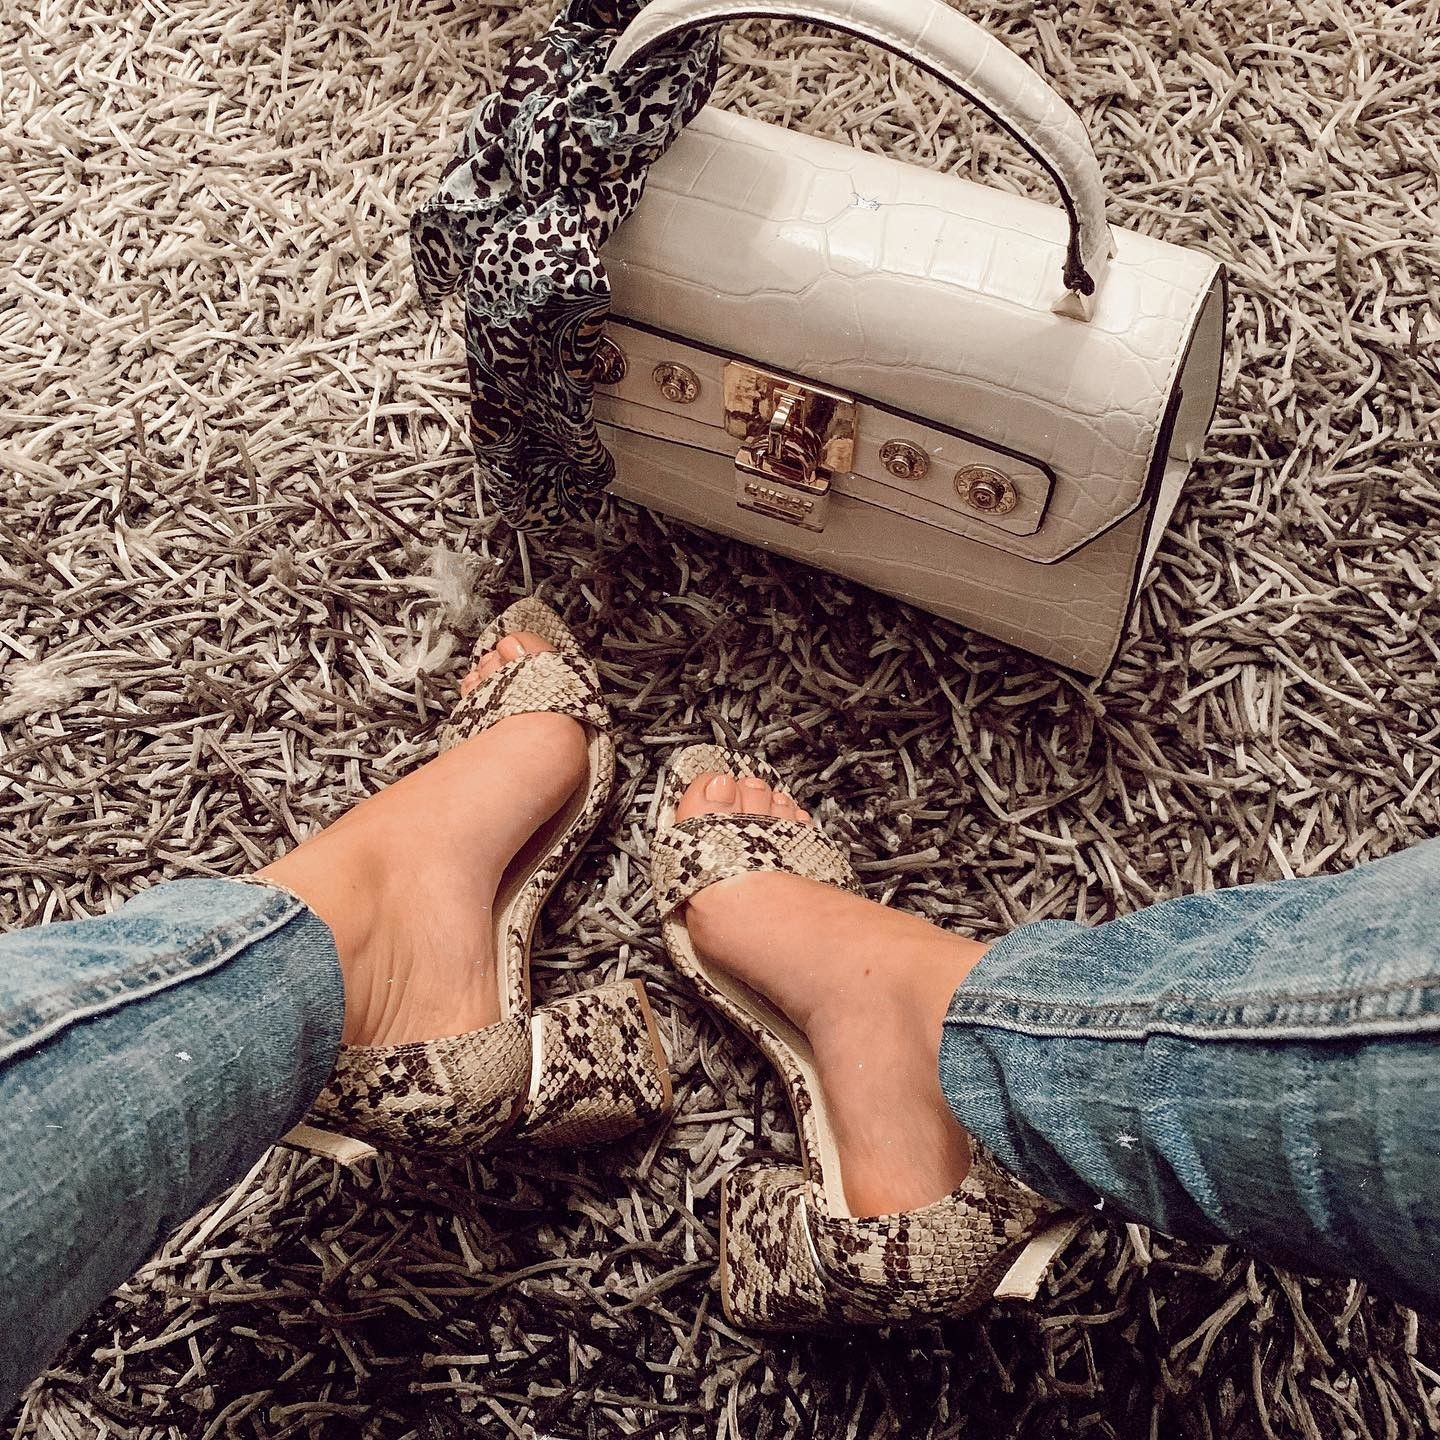 GUESS Anne Marie Dome Satchel     Guess bags